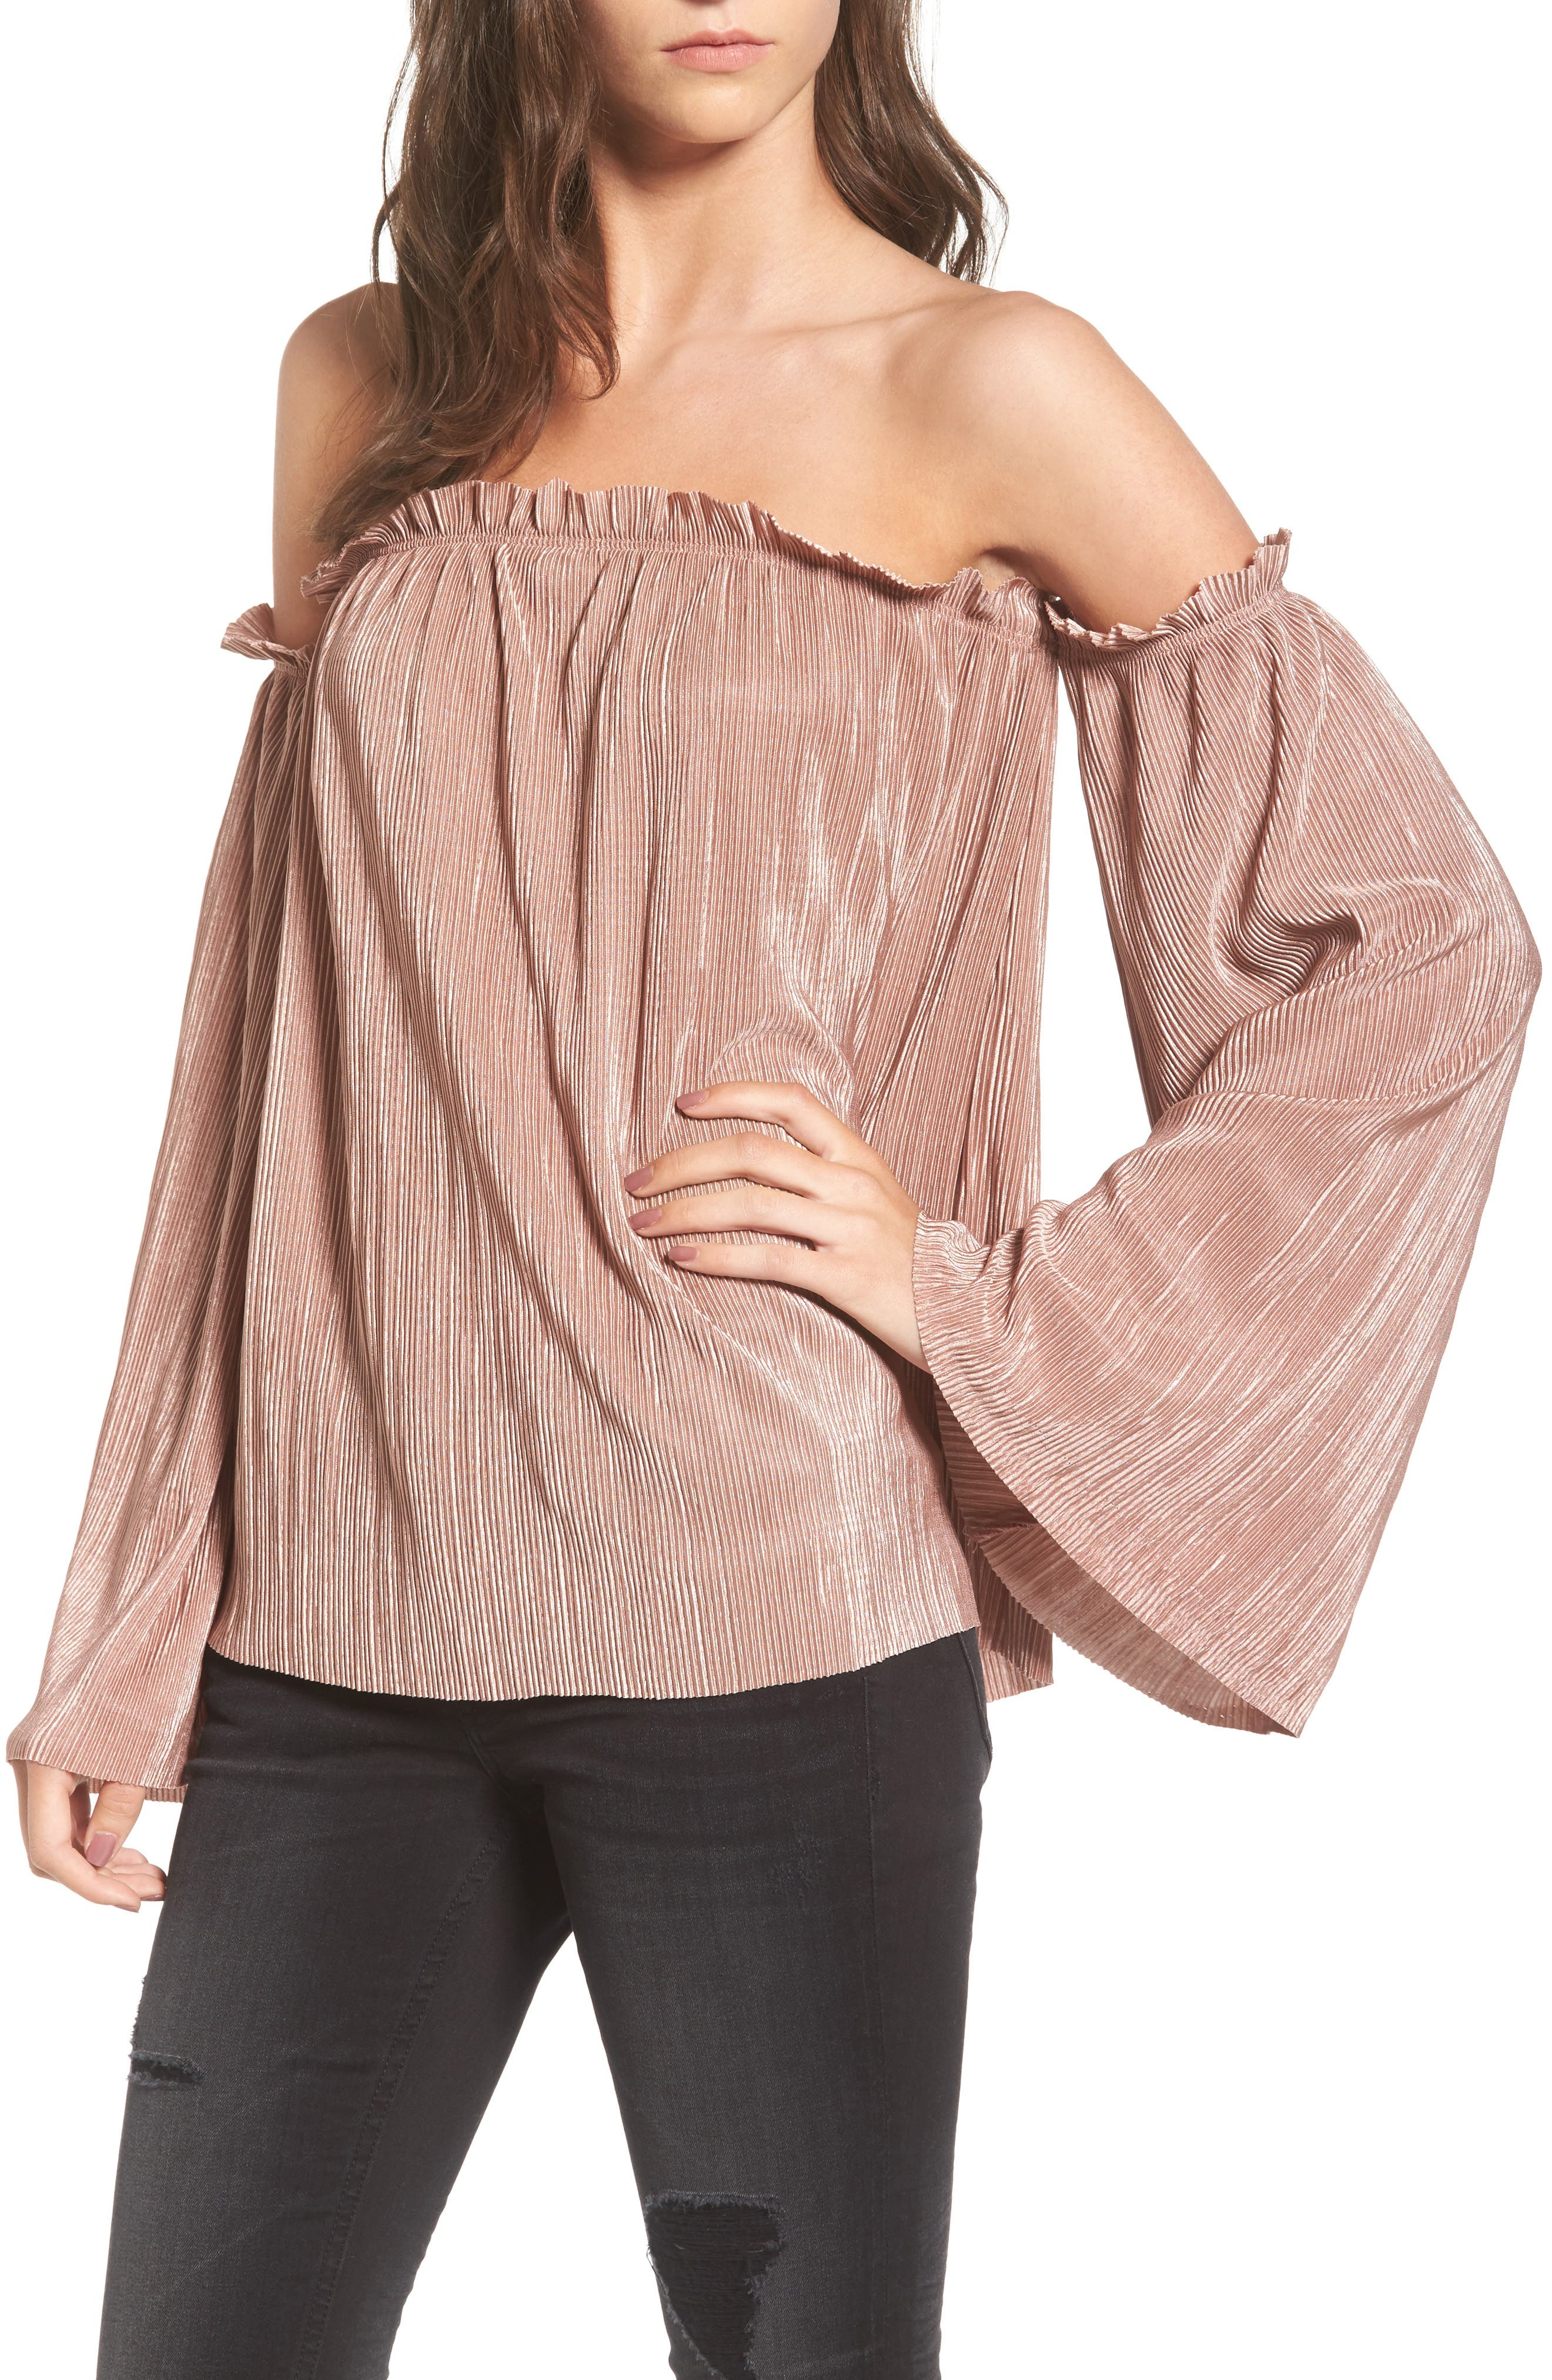 Mimi Chica Plissé Off the Shoulder Top